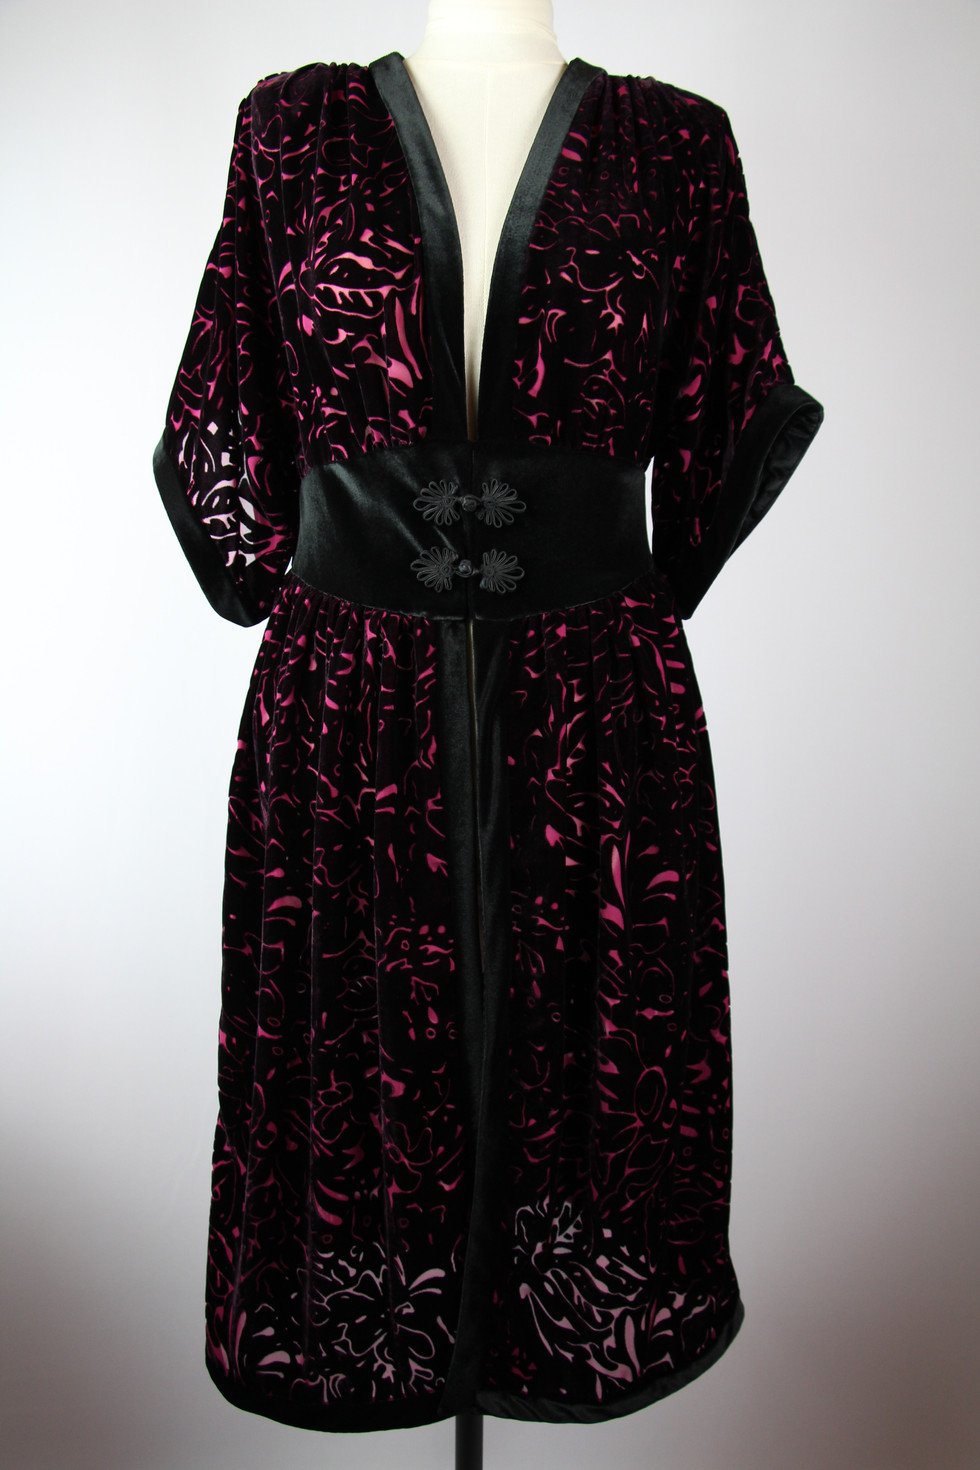 Veronica Dressing Gown